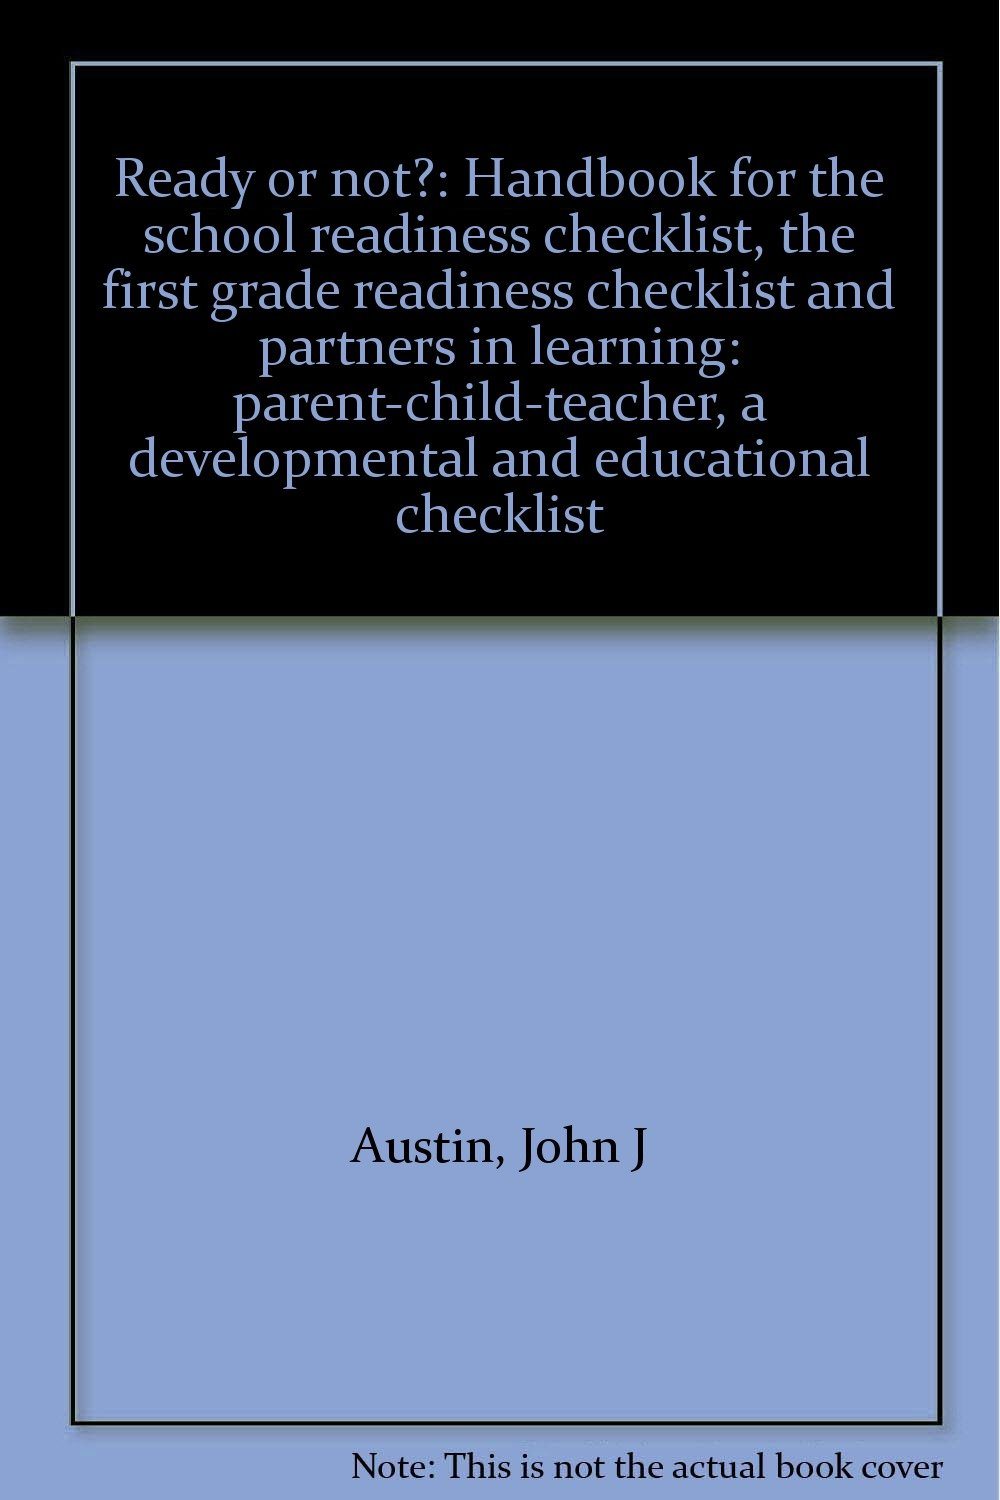 Ready or not?: Handbook for the school readiness checklist